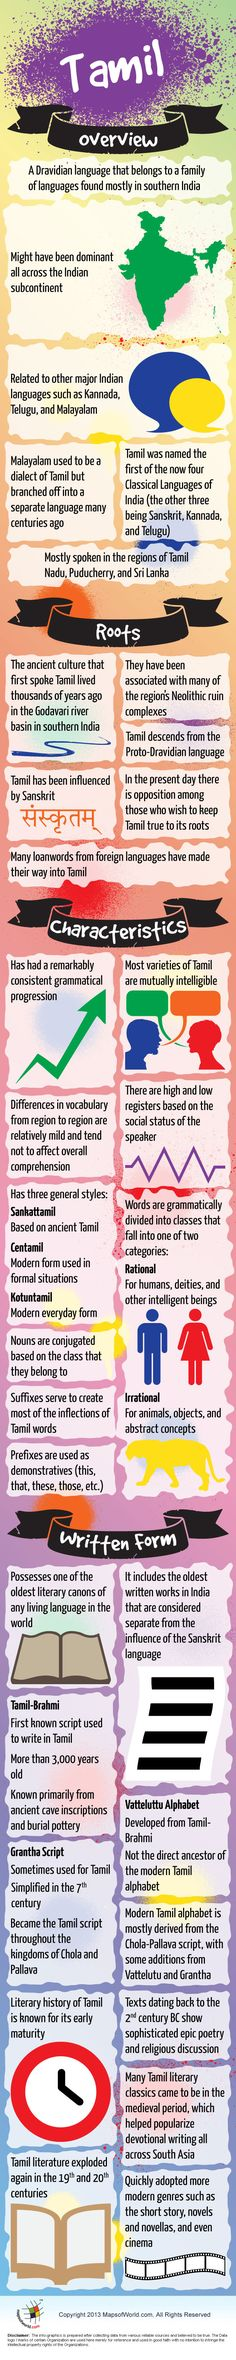 Infographic of Tamil Language